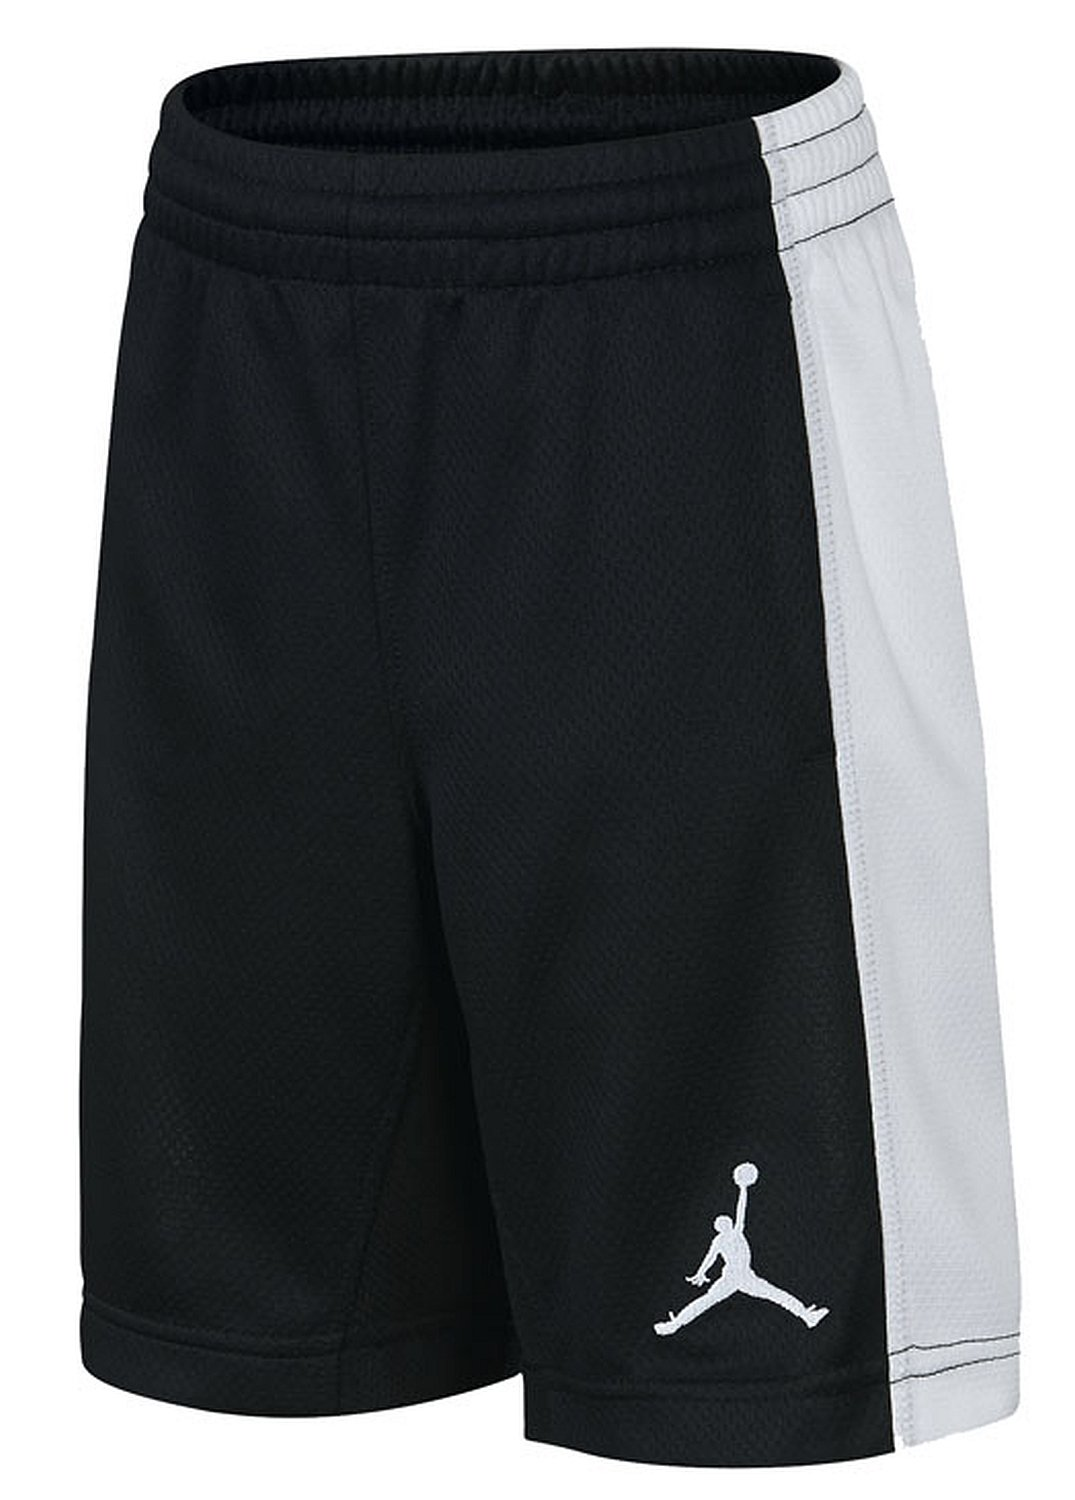 Jordan AJ Highlight Shorts large (12-13years)